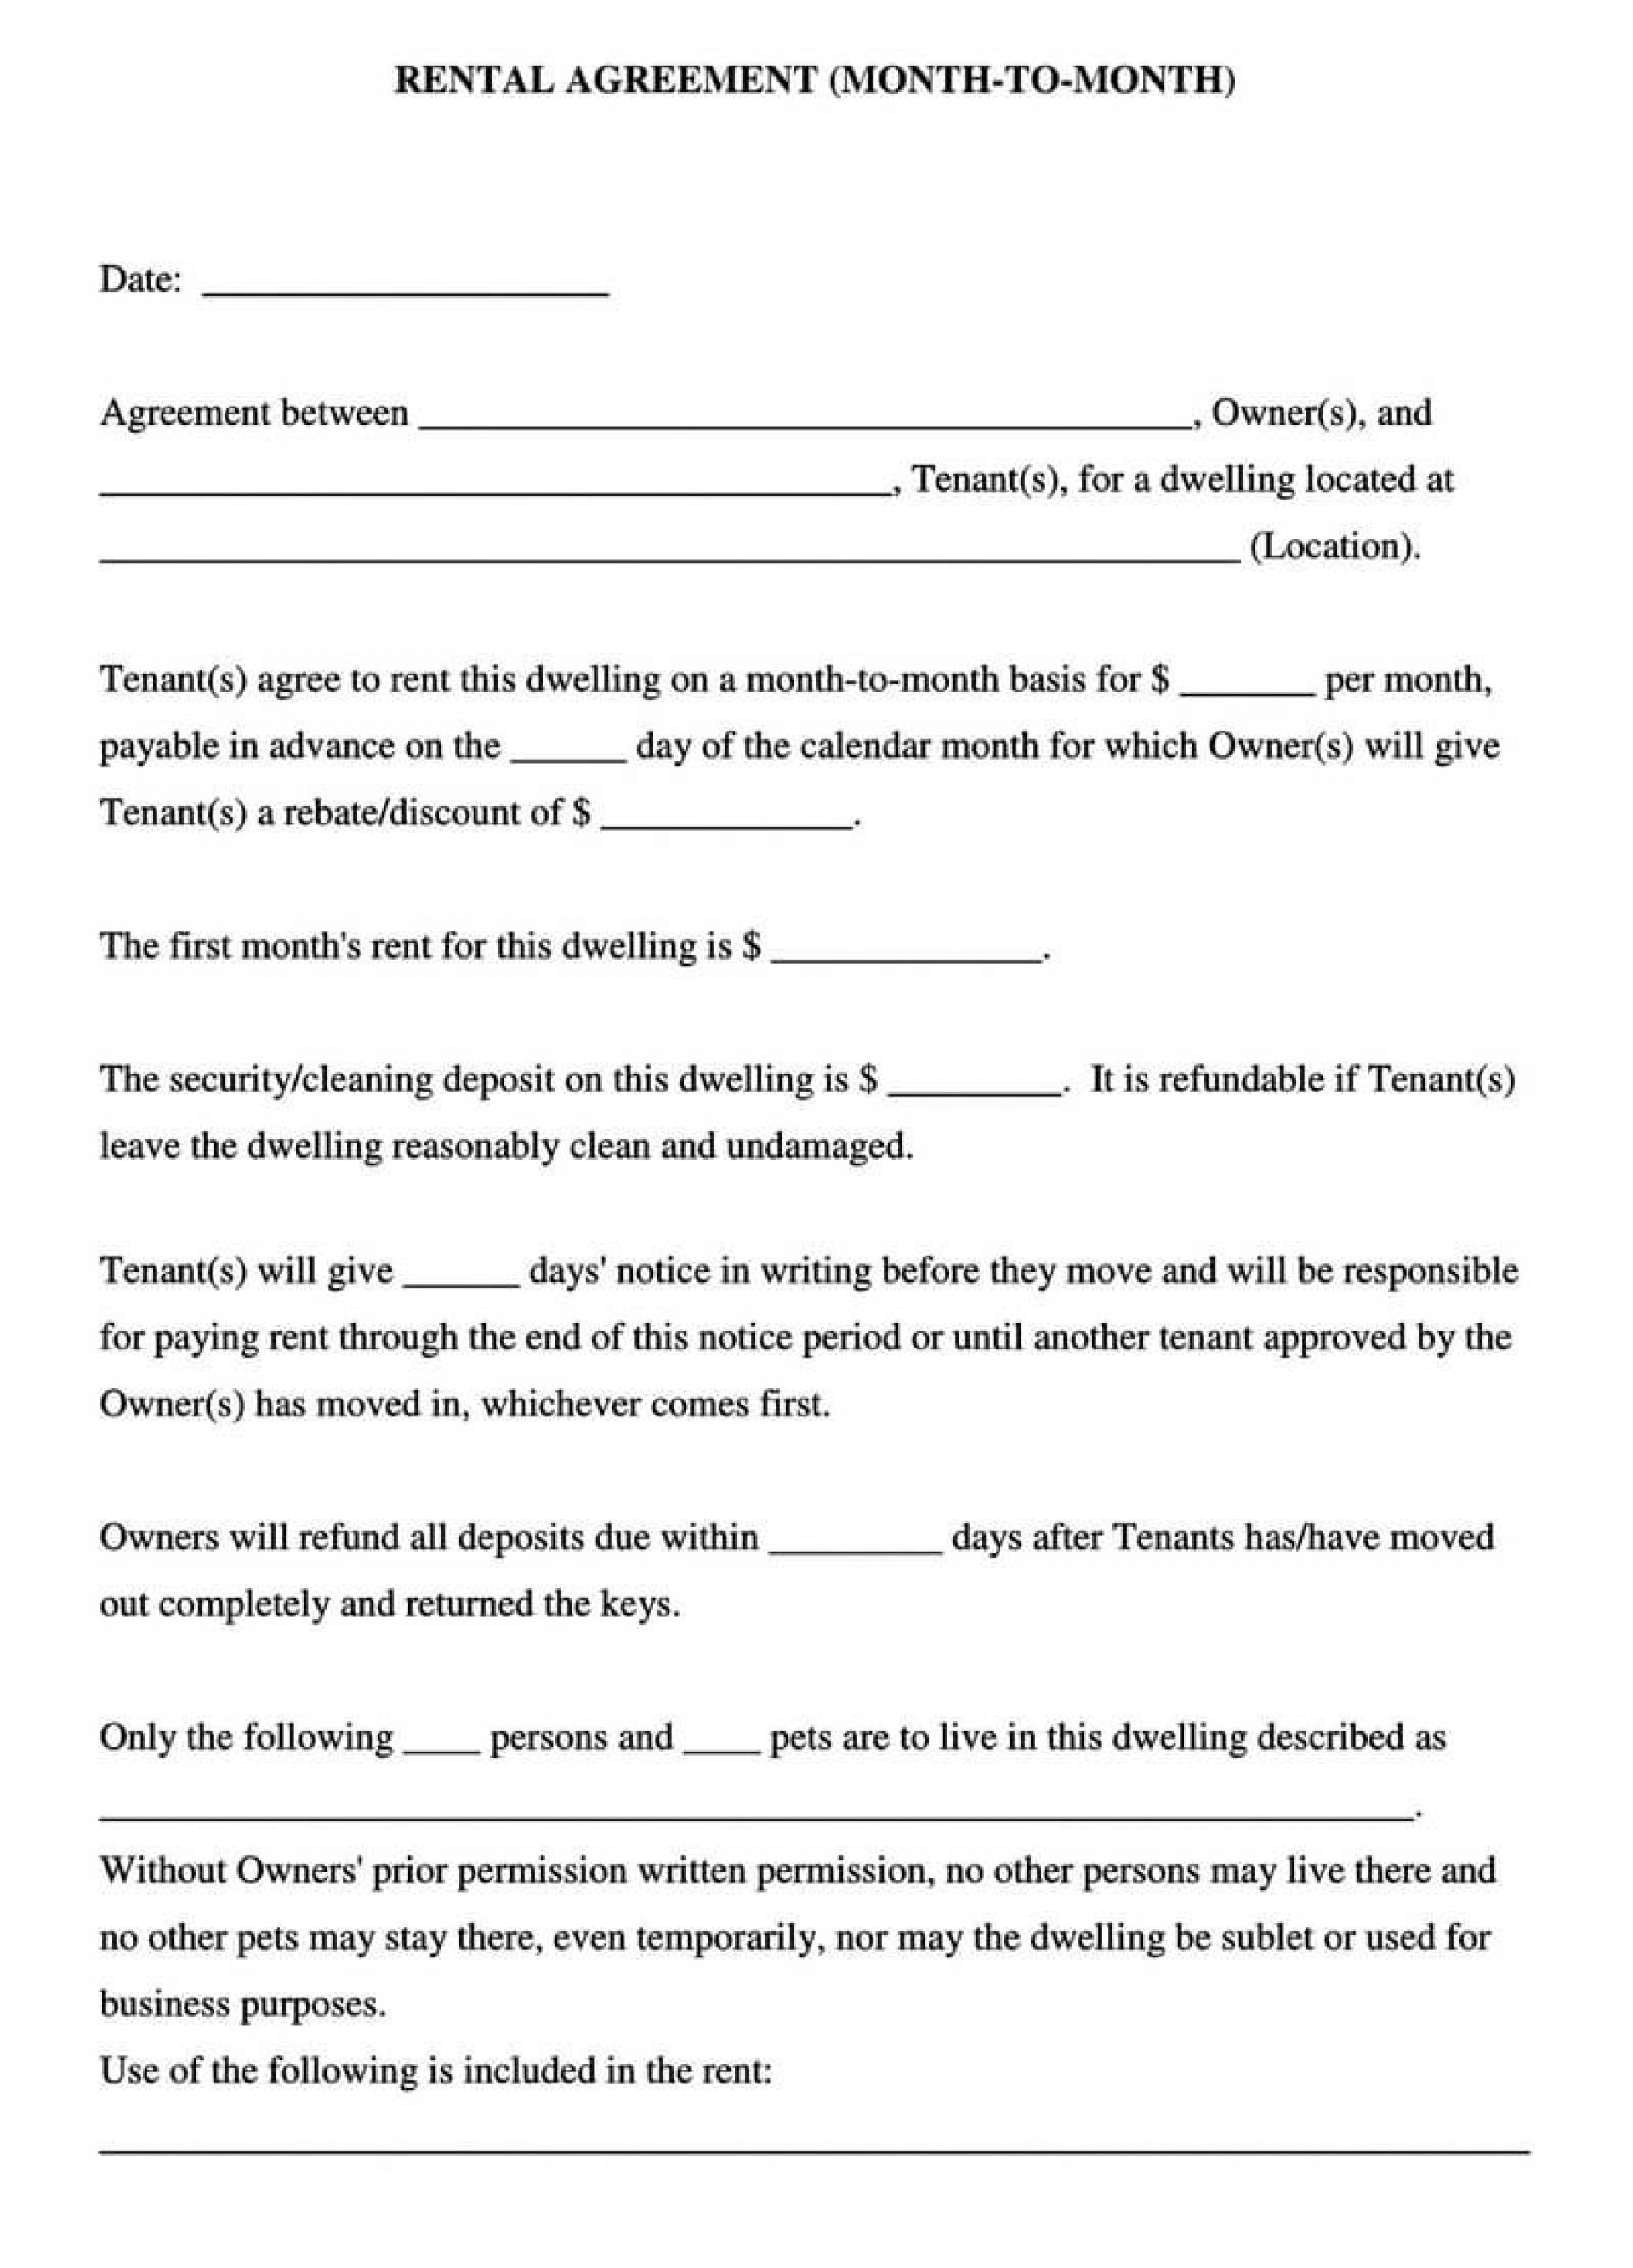 008 Magnificent Rental Lease Template Free Download Idea  California Agreement Florida Word Format1920